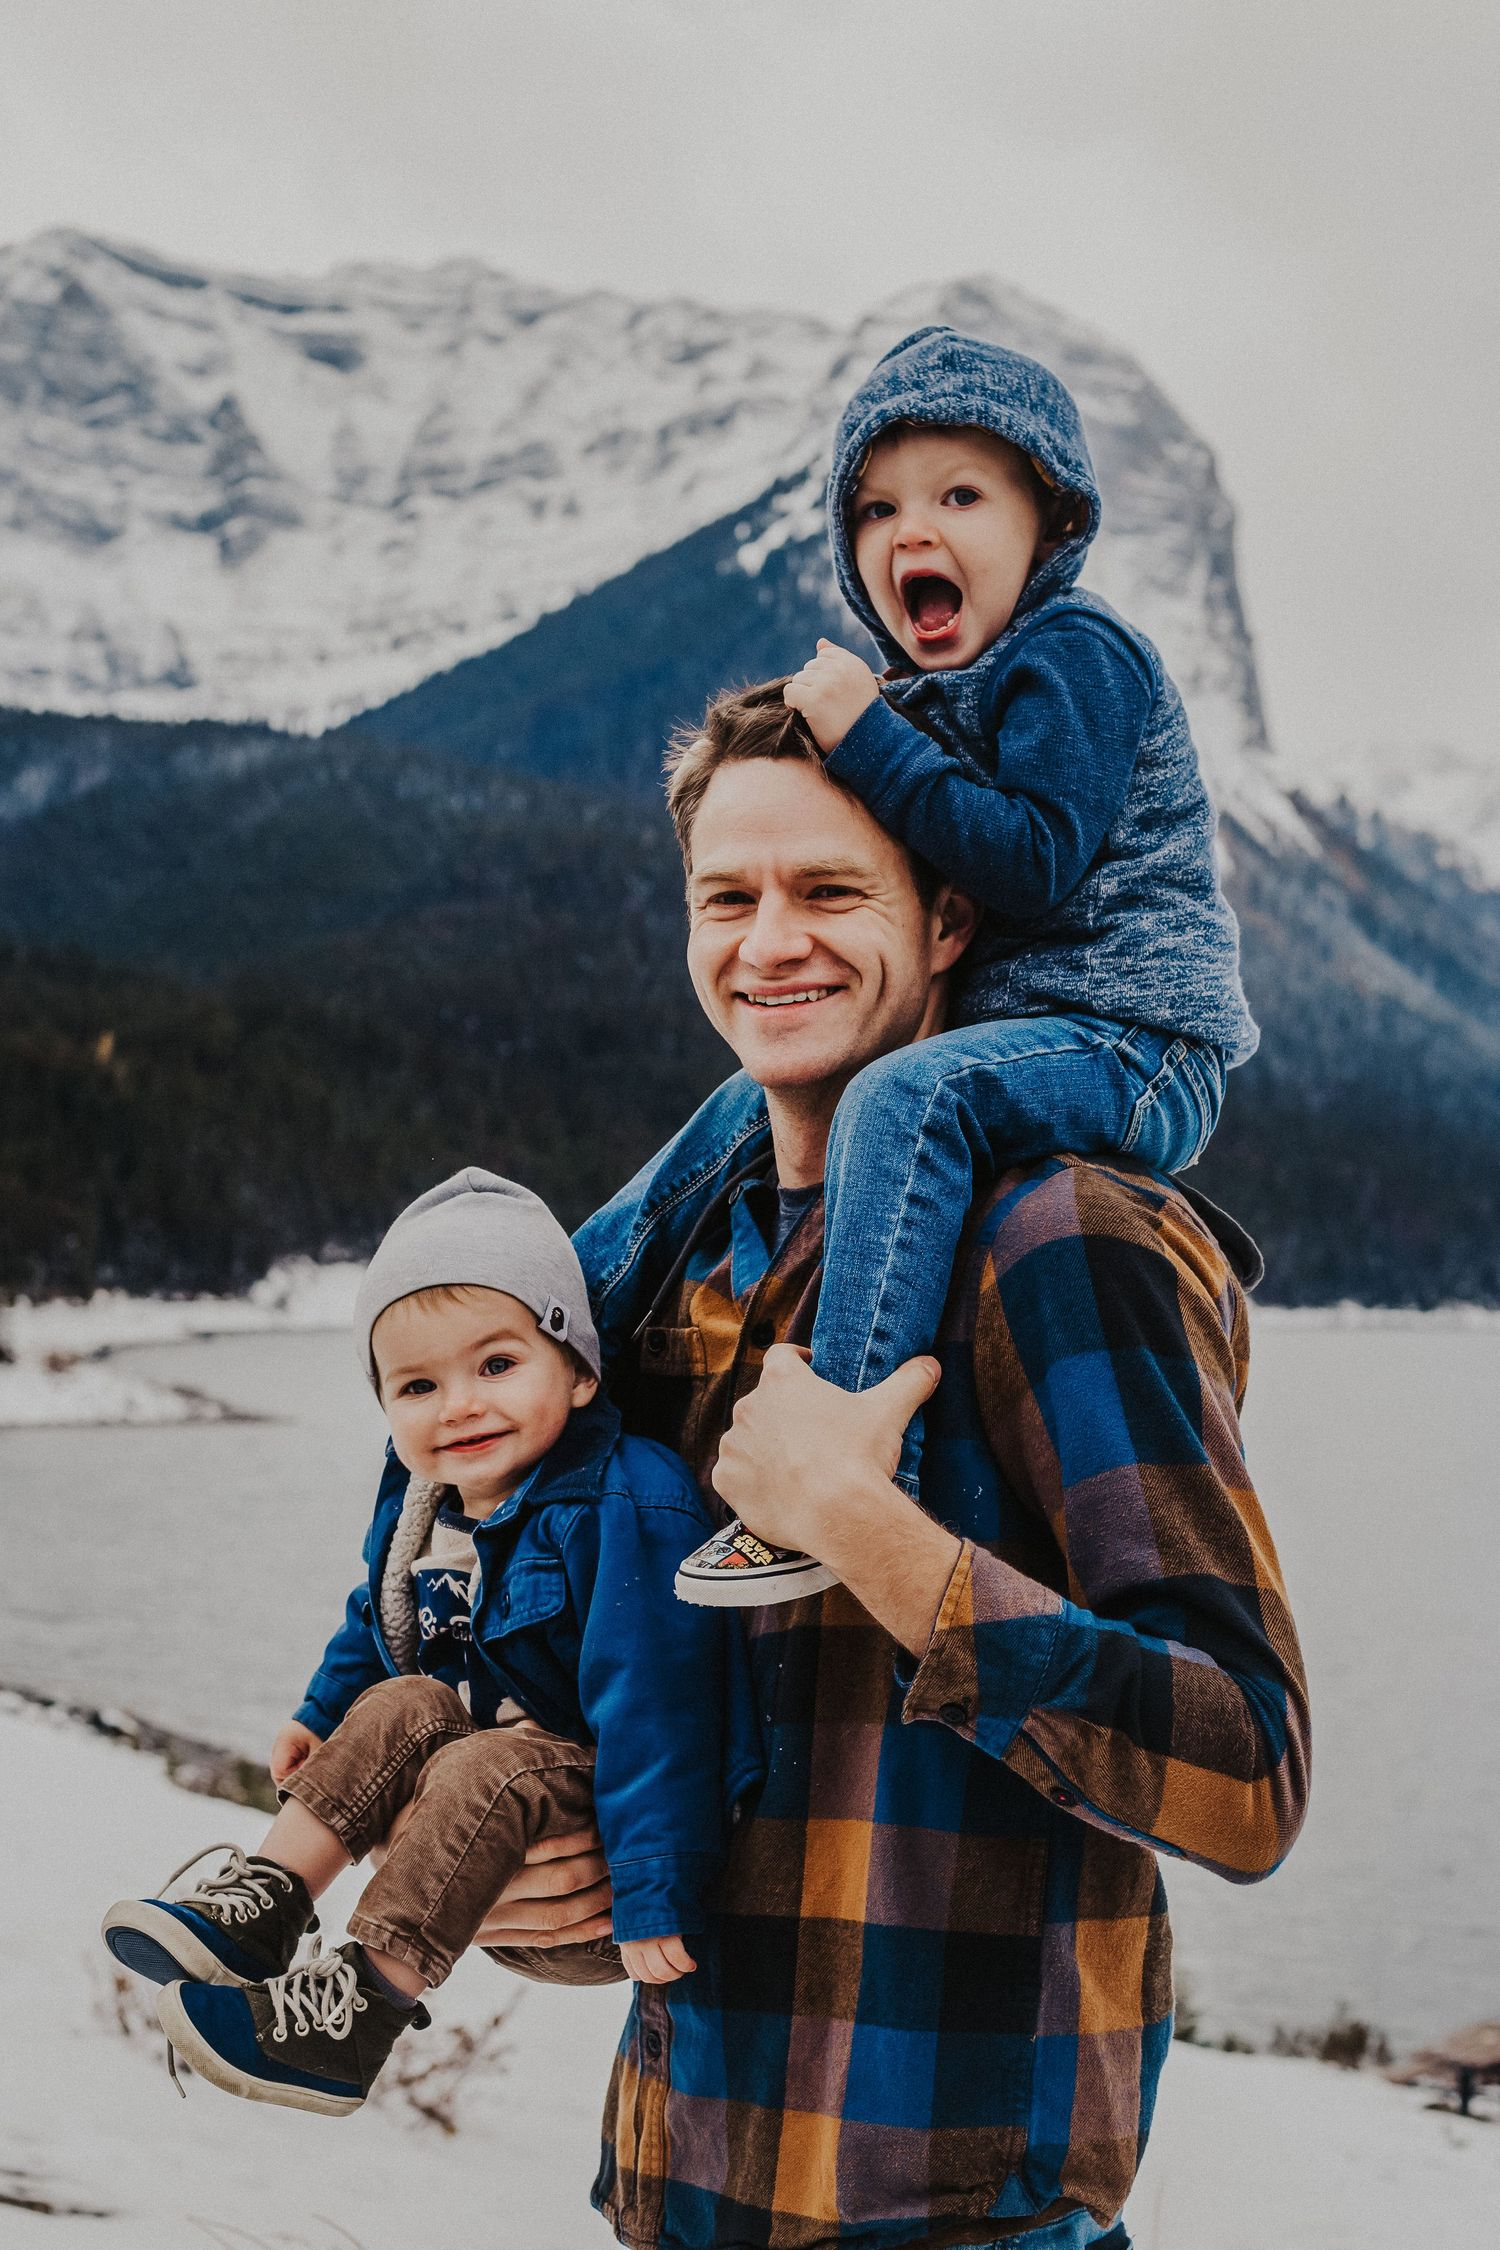 dad holds baby boy and has other son on his shoulders in front of mountains